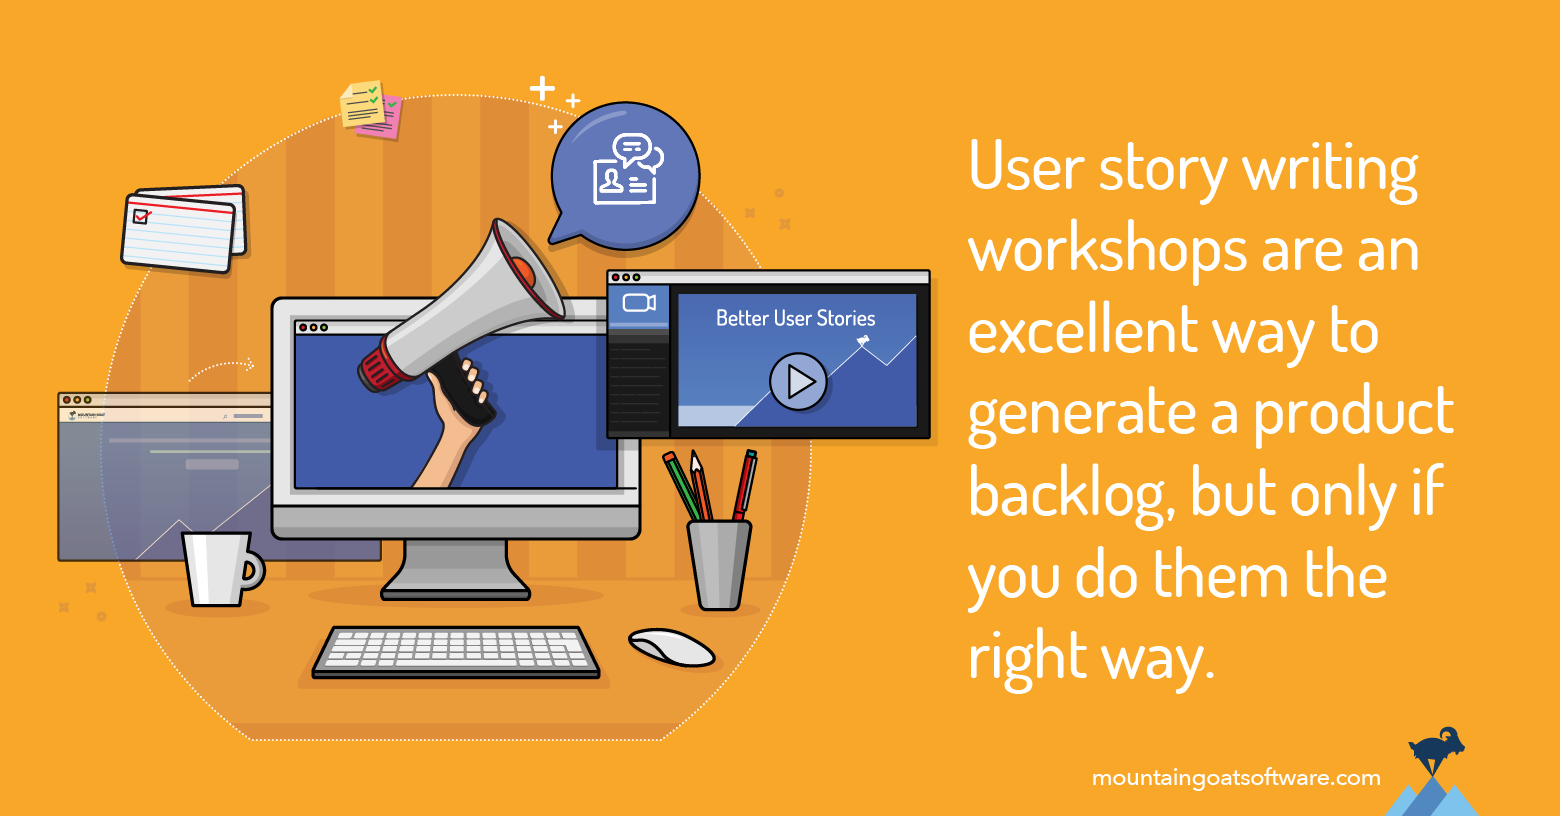 Video Training: How to Run a Successful User Story Writing Workshop